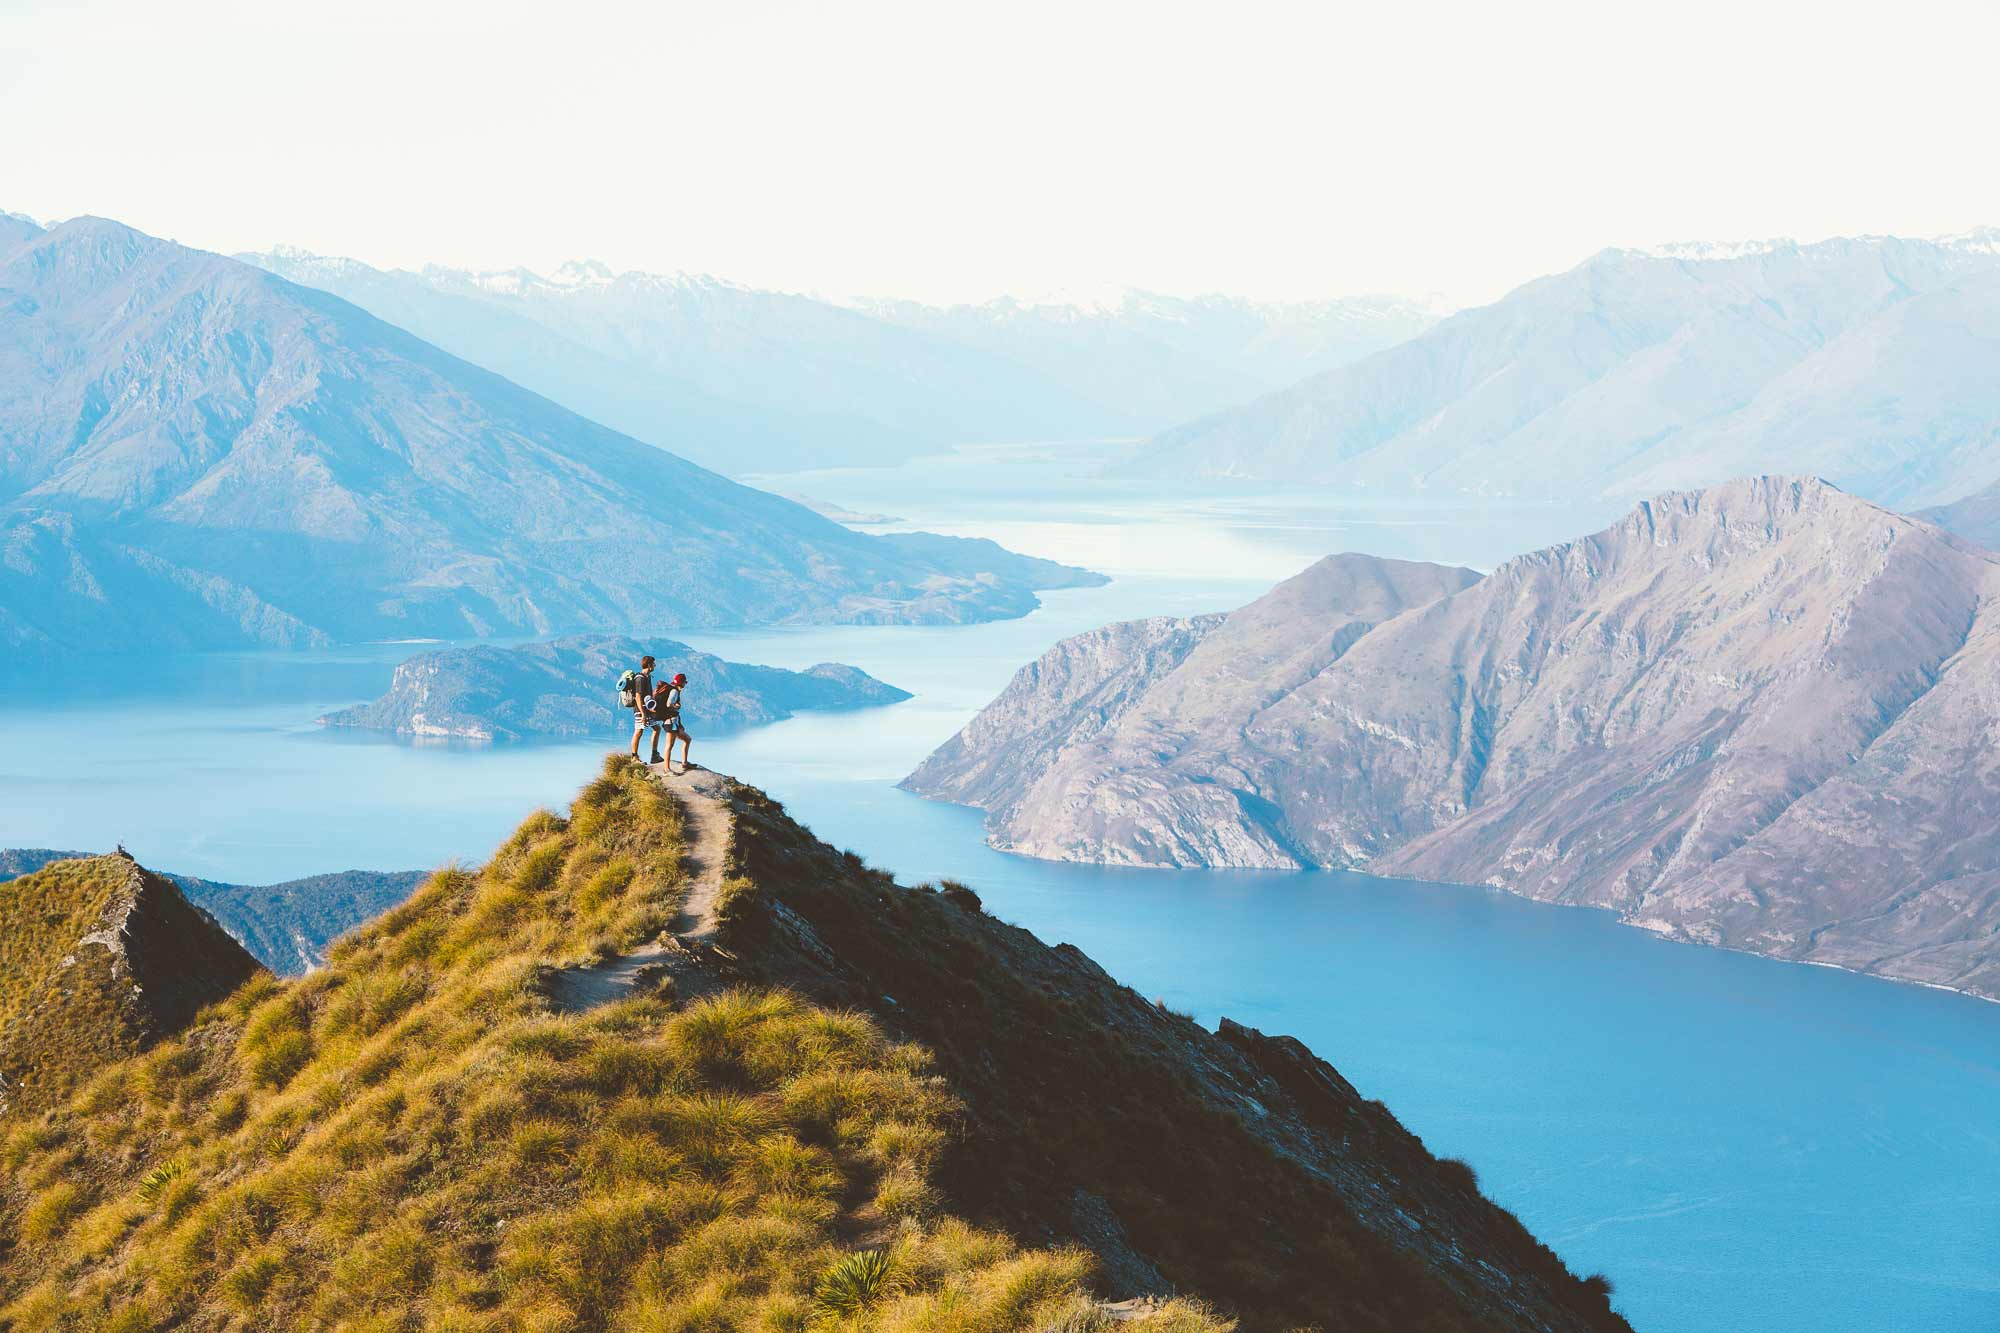 Hiking up Mt roy for the best view over Wanaka